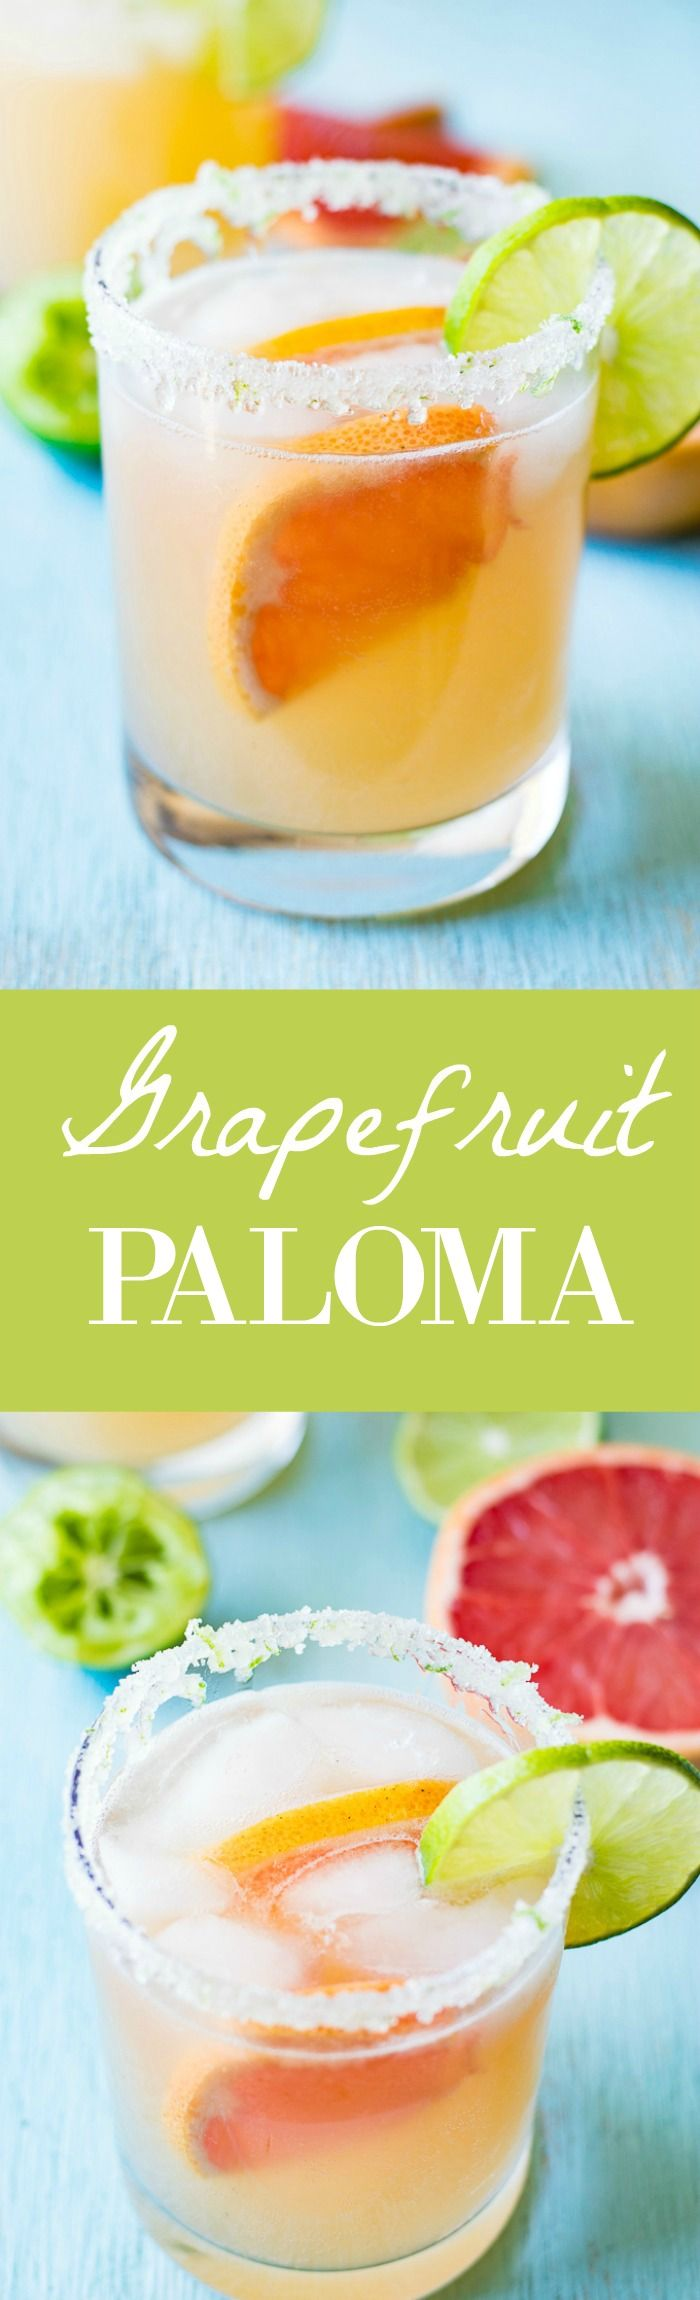 This Grapefruit Paloma recipe is so refreshing and classy!  This easy to make cocktail is made with fresh grapefruit juice and tequila. This is the perfect drink for sipping on this weekend!